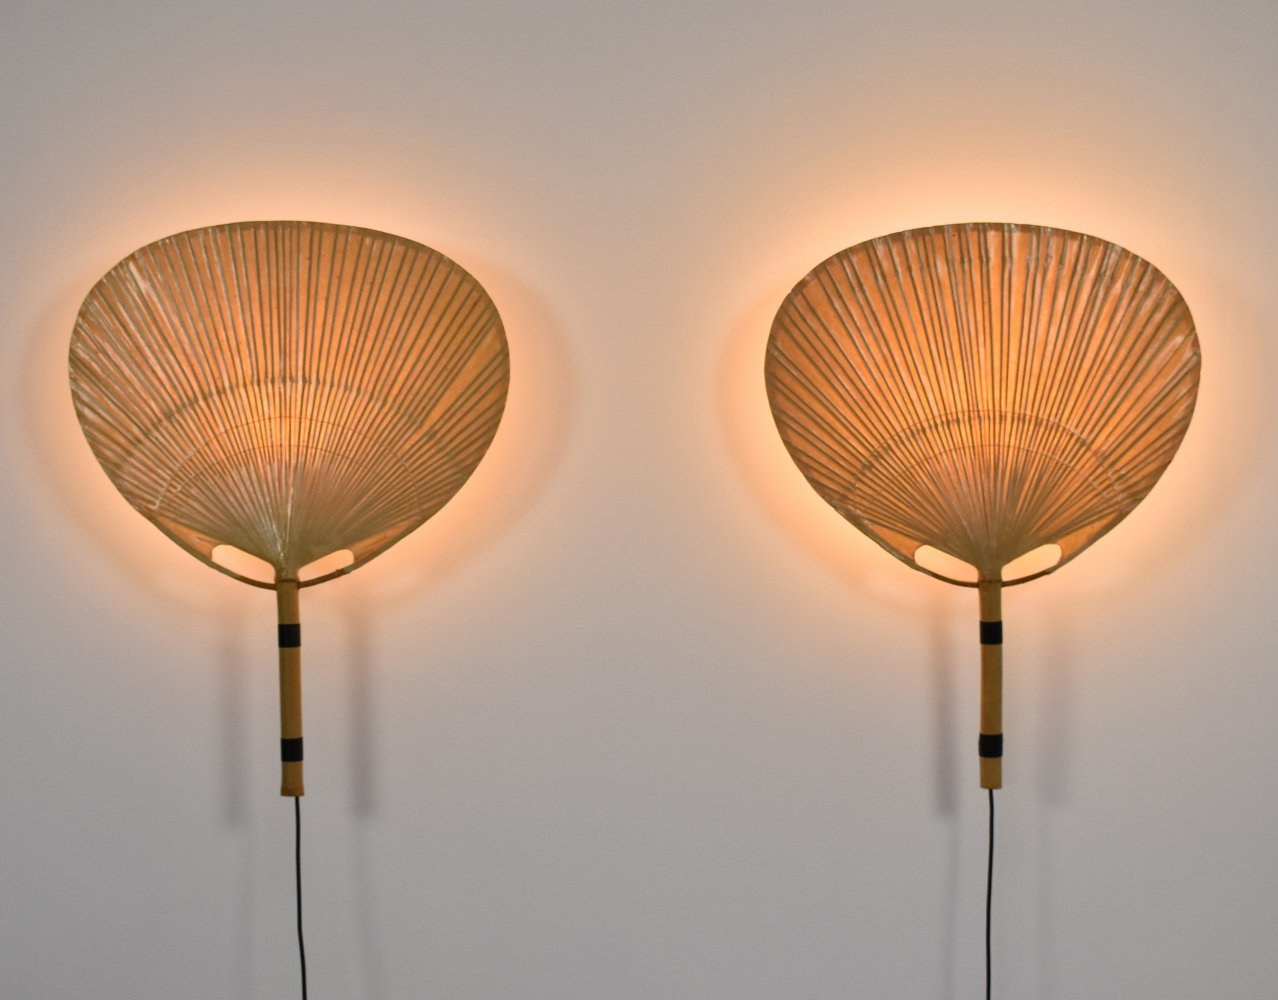 Pair of Uchiwa wall lamps by Ingo Maurer for M Design, 1970s